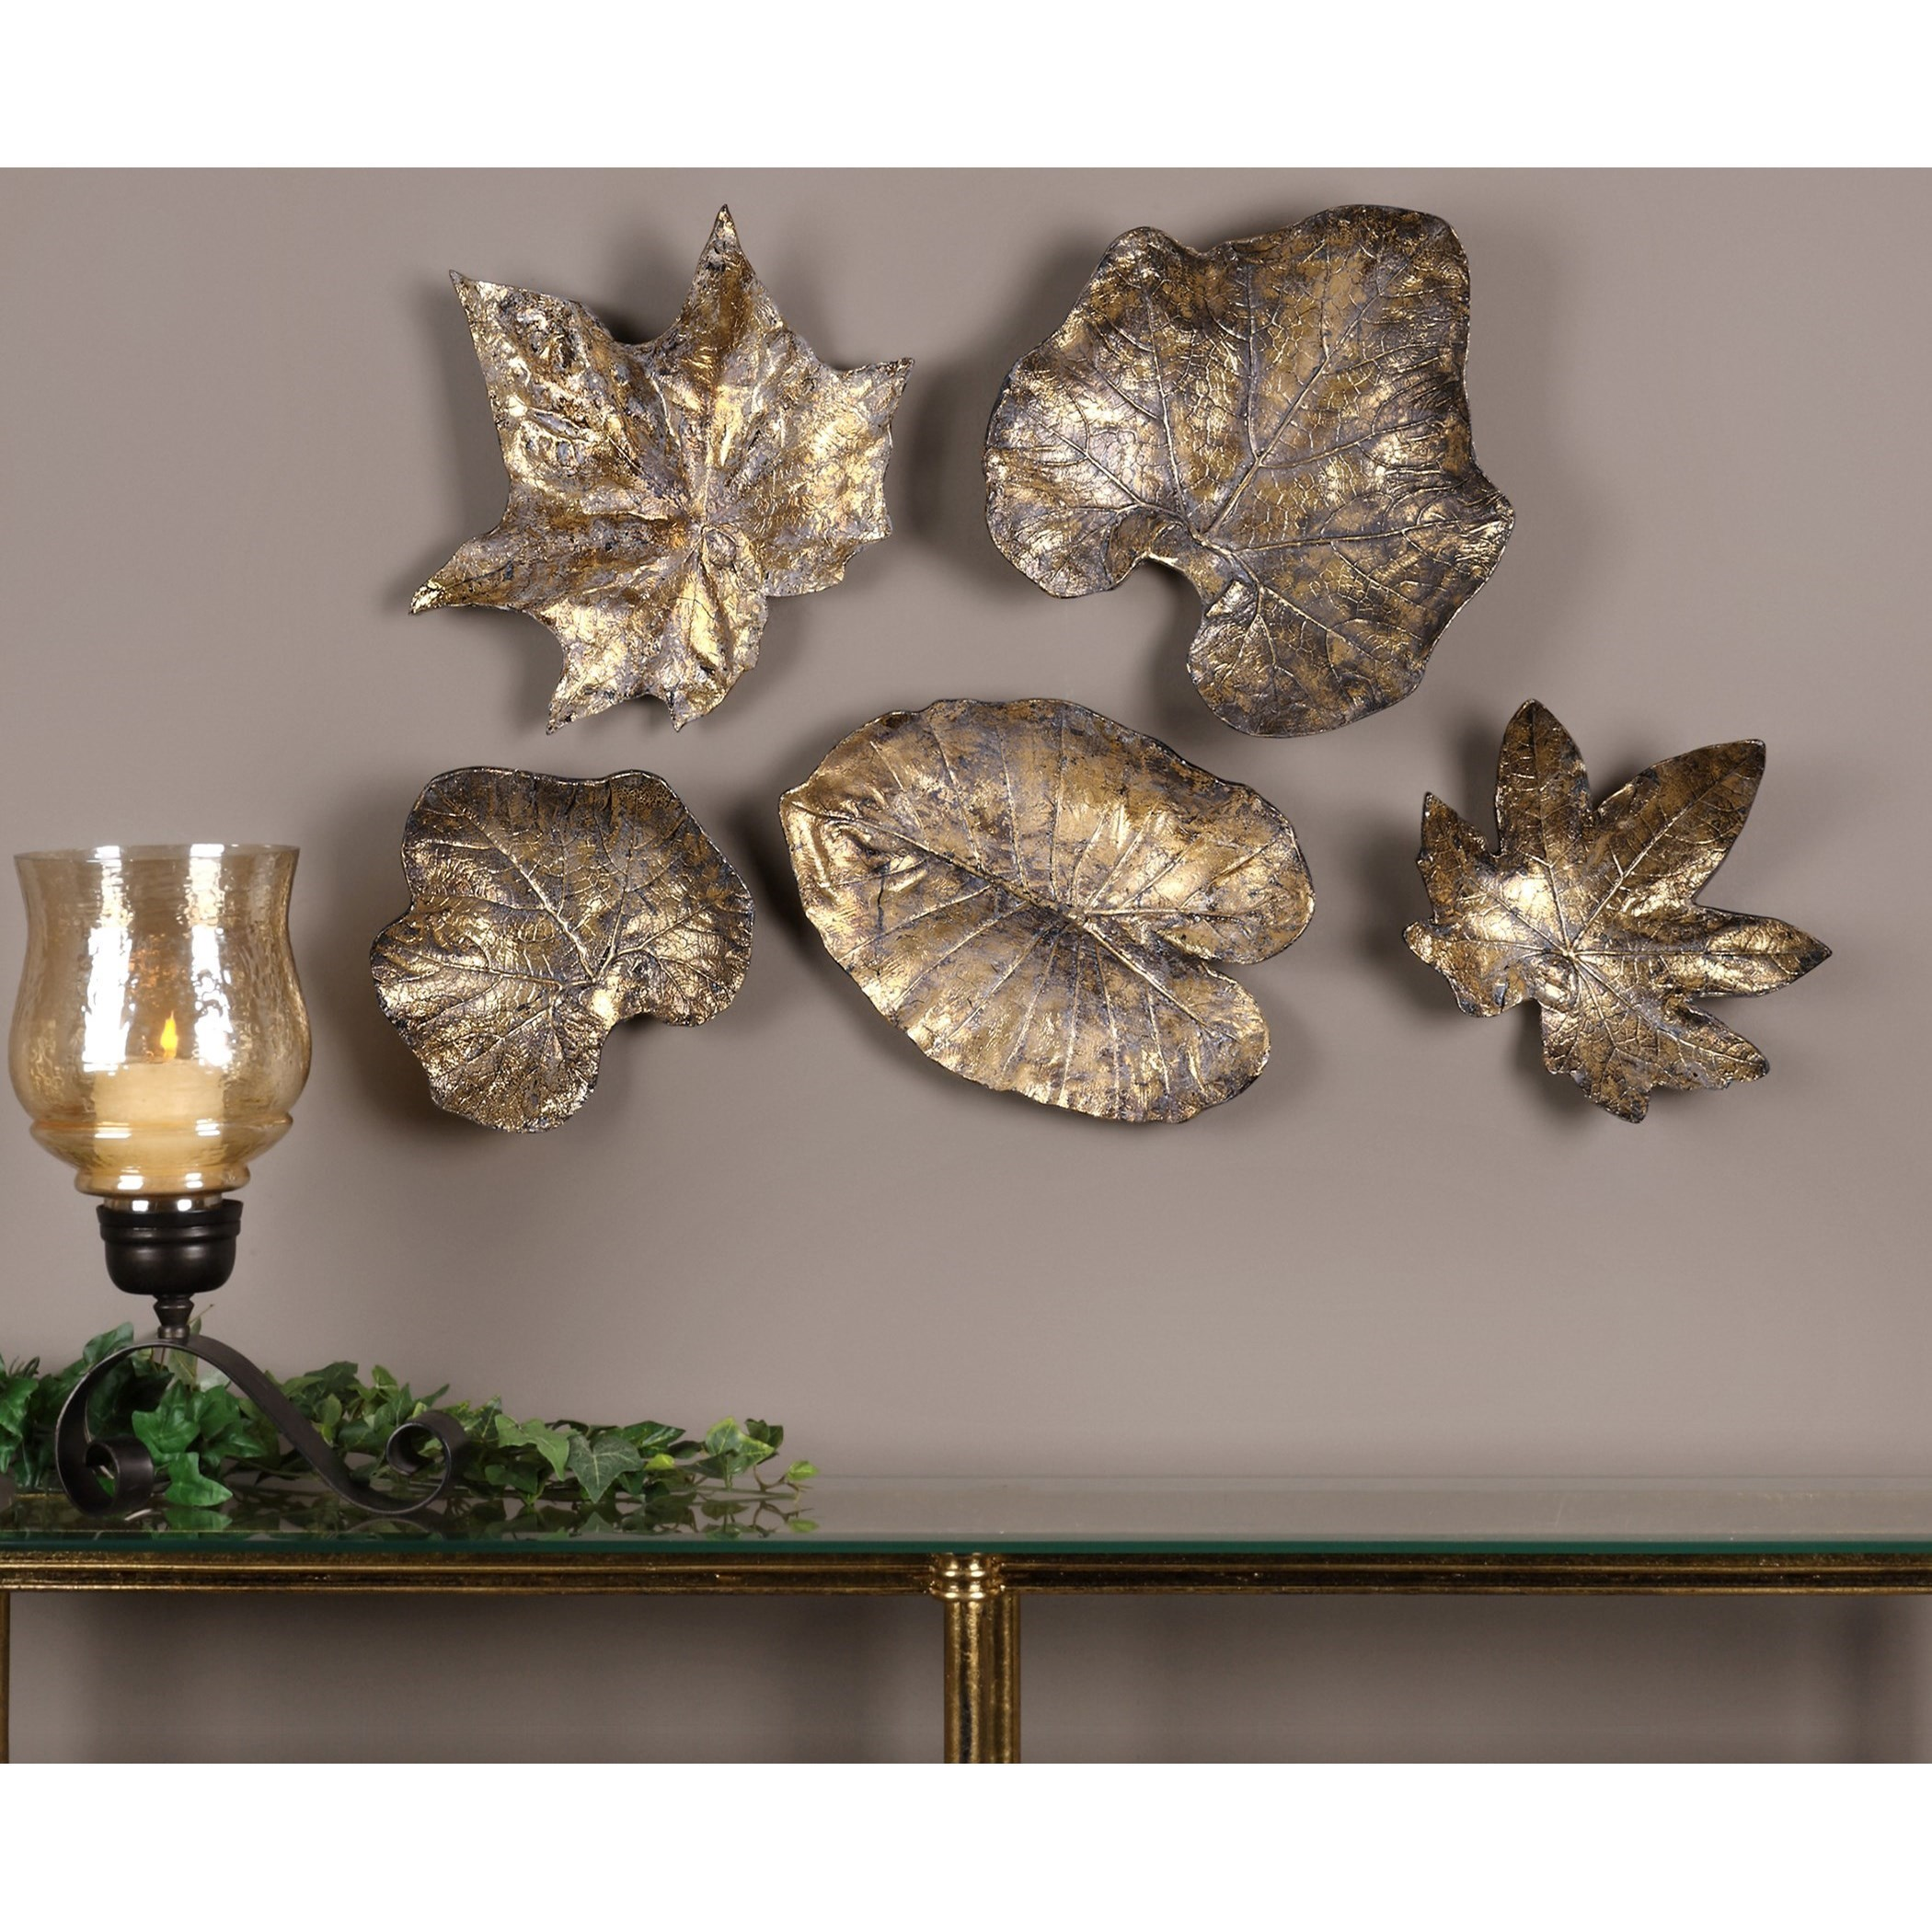 ... Uttermost Alternative Wall Decor Bronze Leaves Wall Art (Set of 5)  sc 1 st  Miskelly Furniture & Uttermost Alternative Wall Decor Bronze Leaves Wall Art (Set of 5 ...